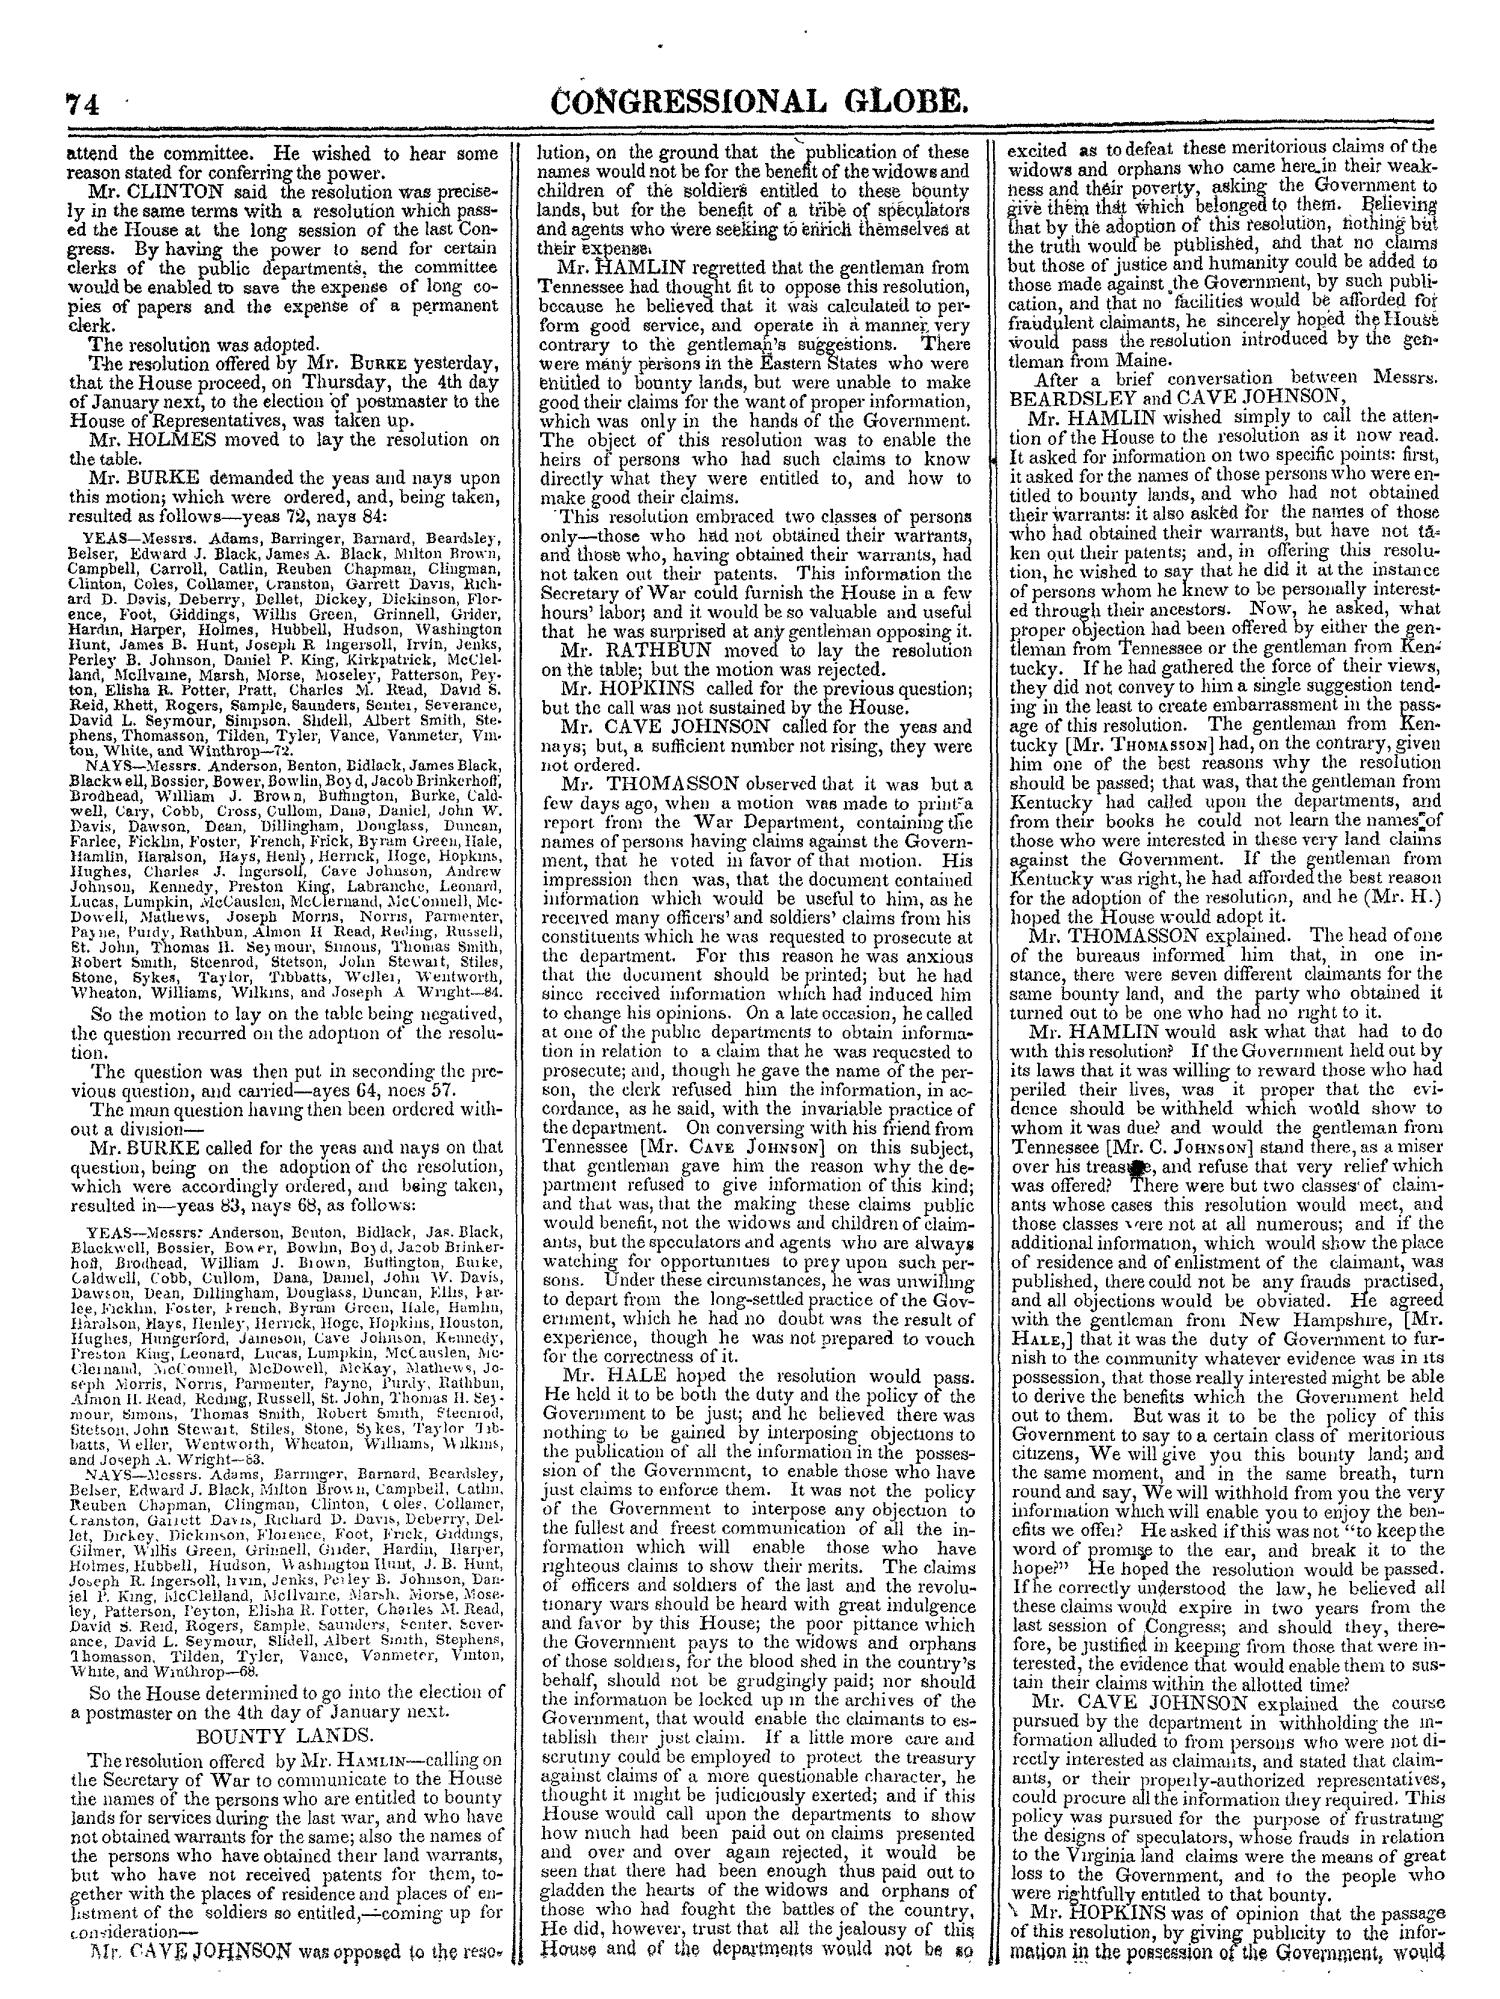 The Congressional Globe, Volume 13, Part 1: Twenty-Eighth Congress, First Session                                                                                                      74